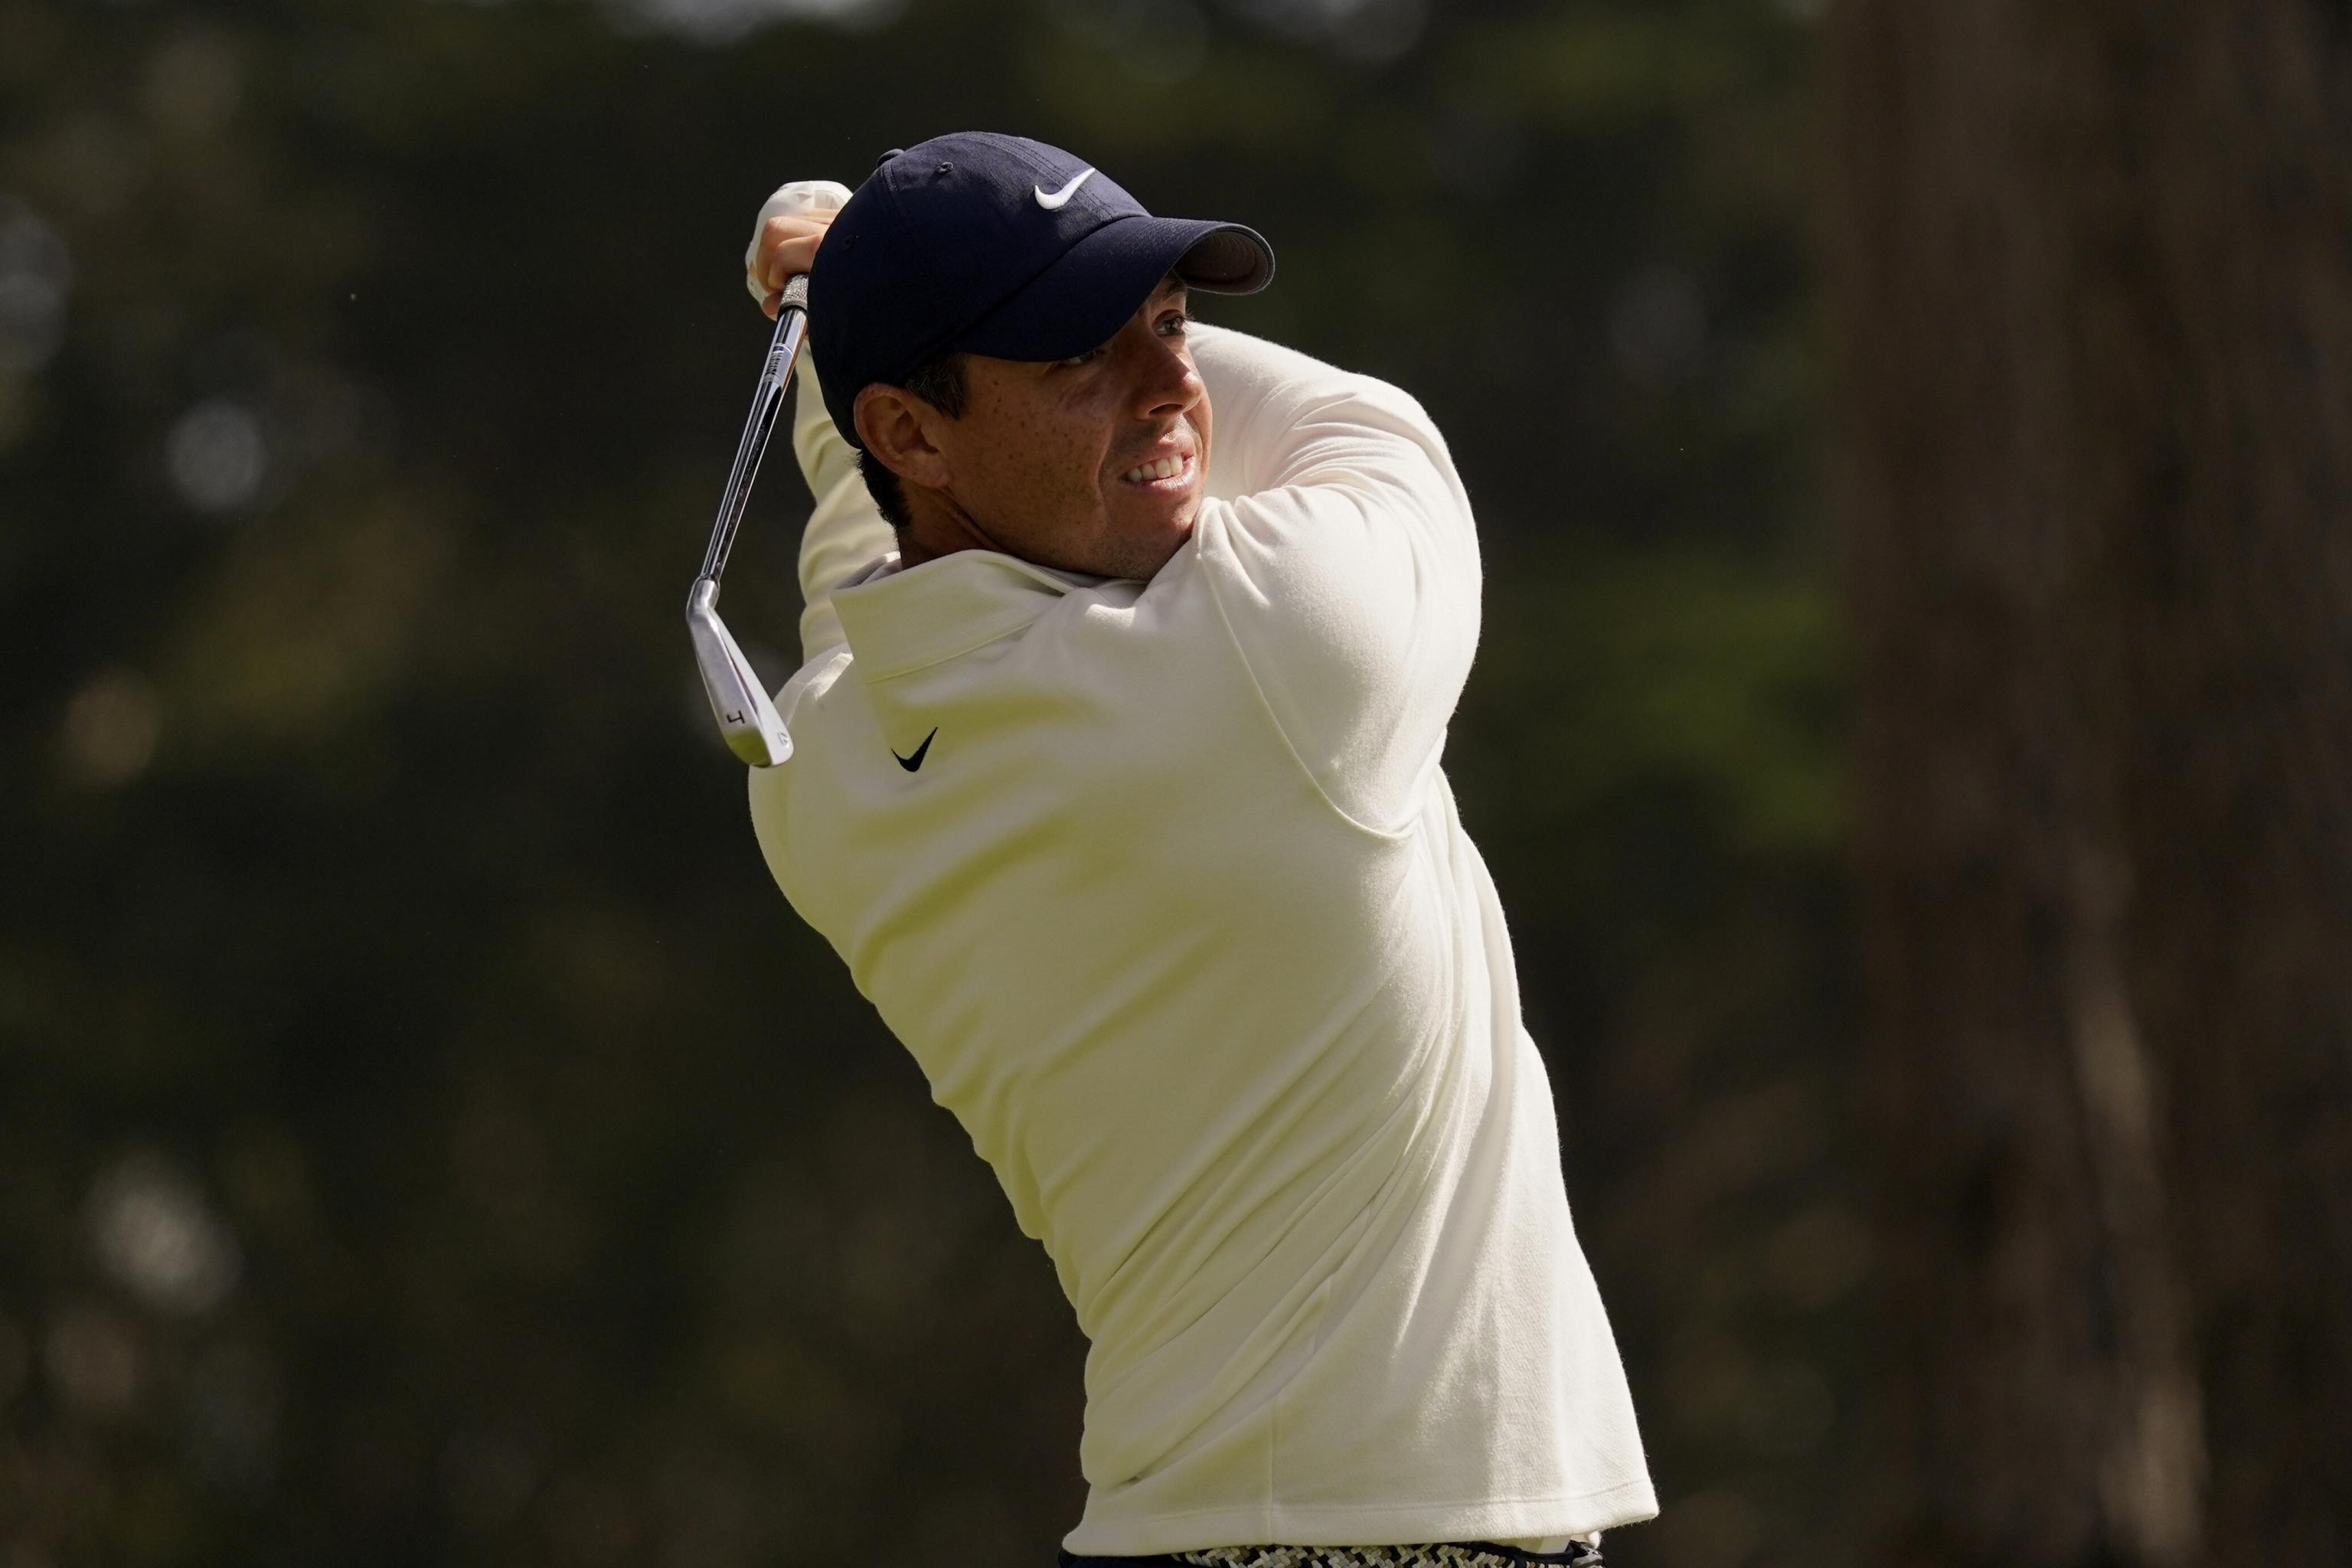 Rory Mcilroy Shoots 71 Fails To Make Charge During Pga Championship 3rd Round Bleacher Report Latest News Videos And Highlights